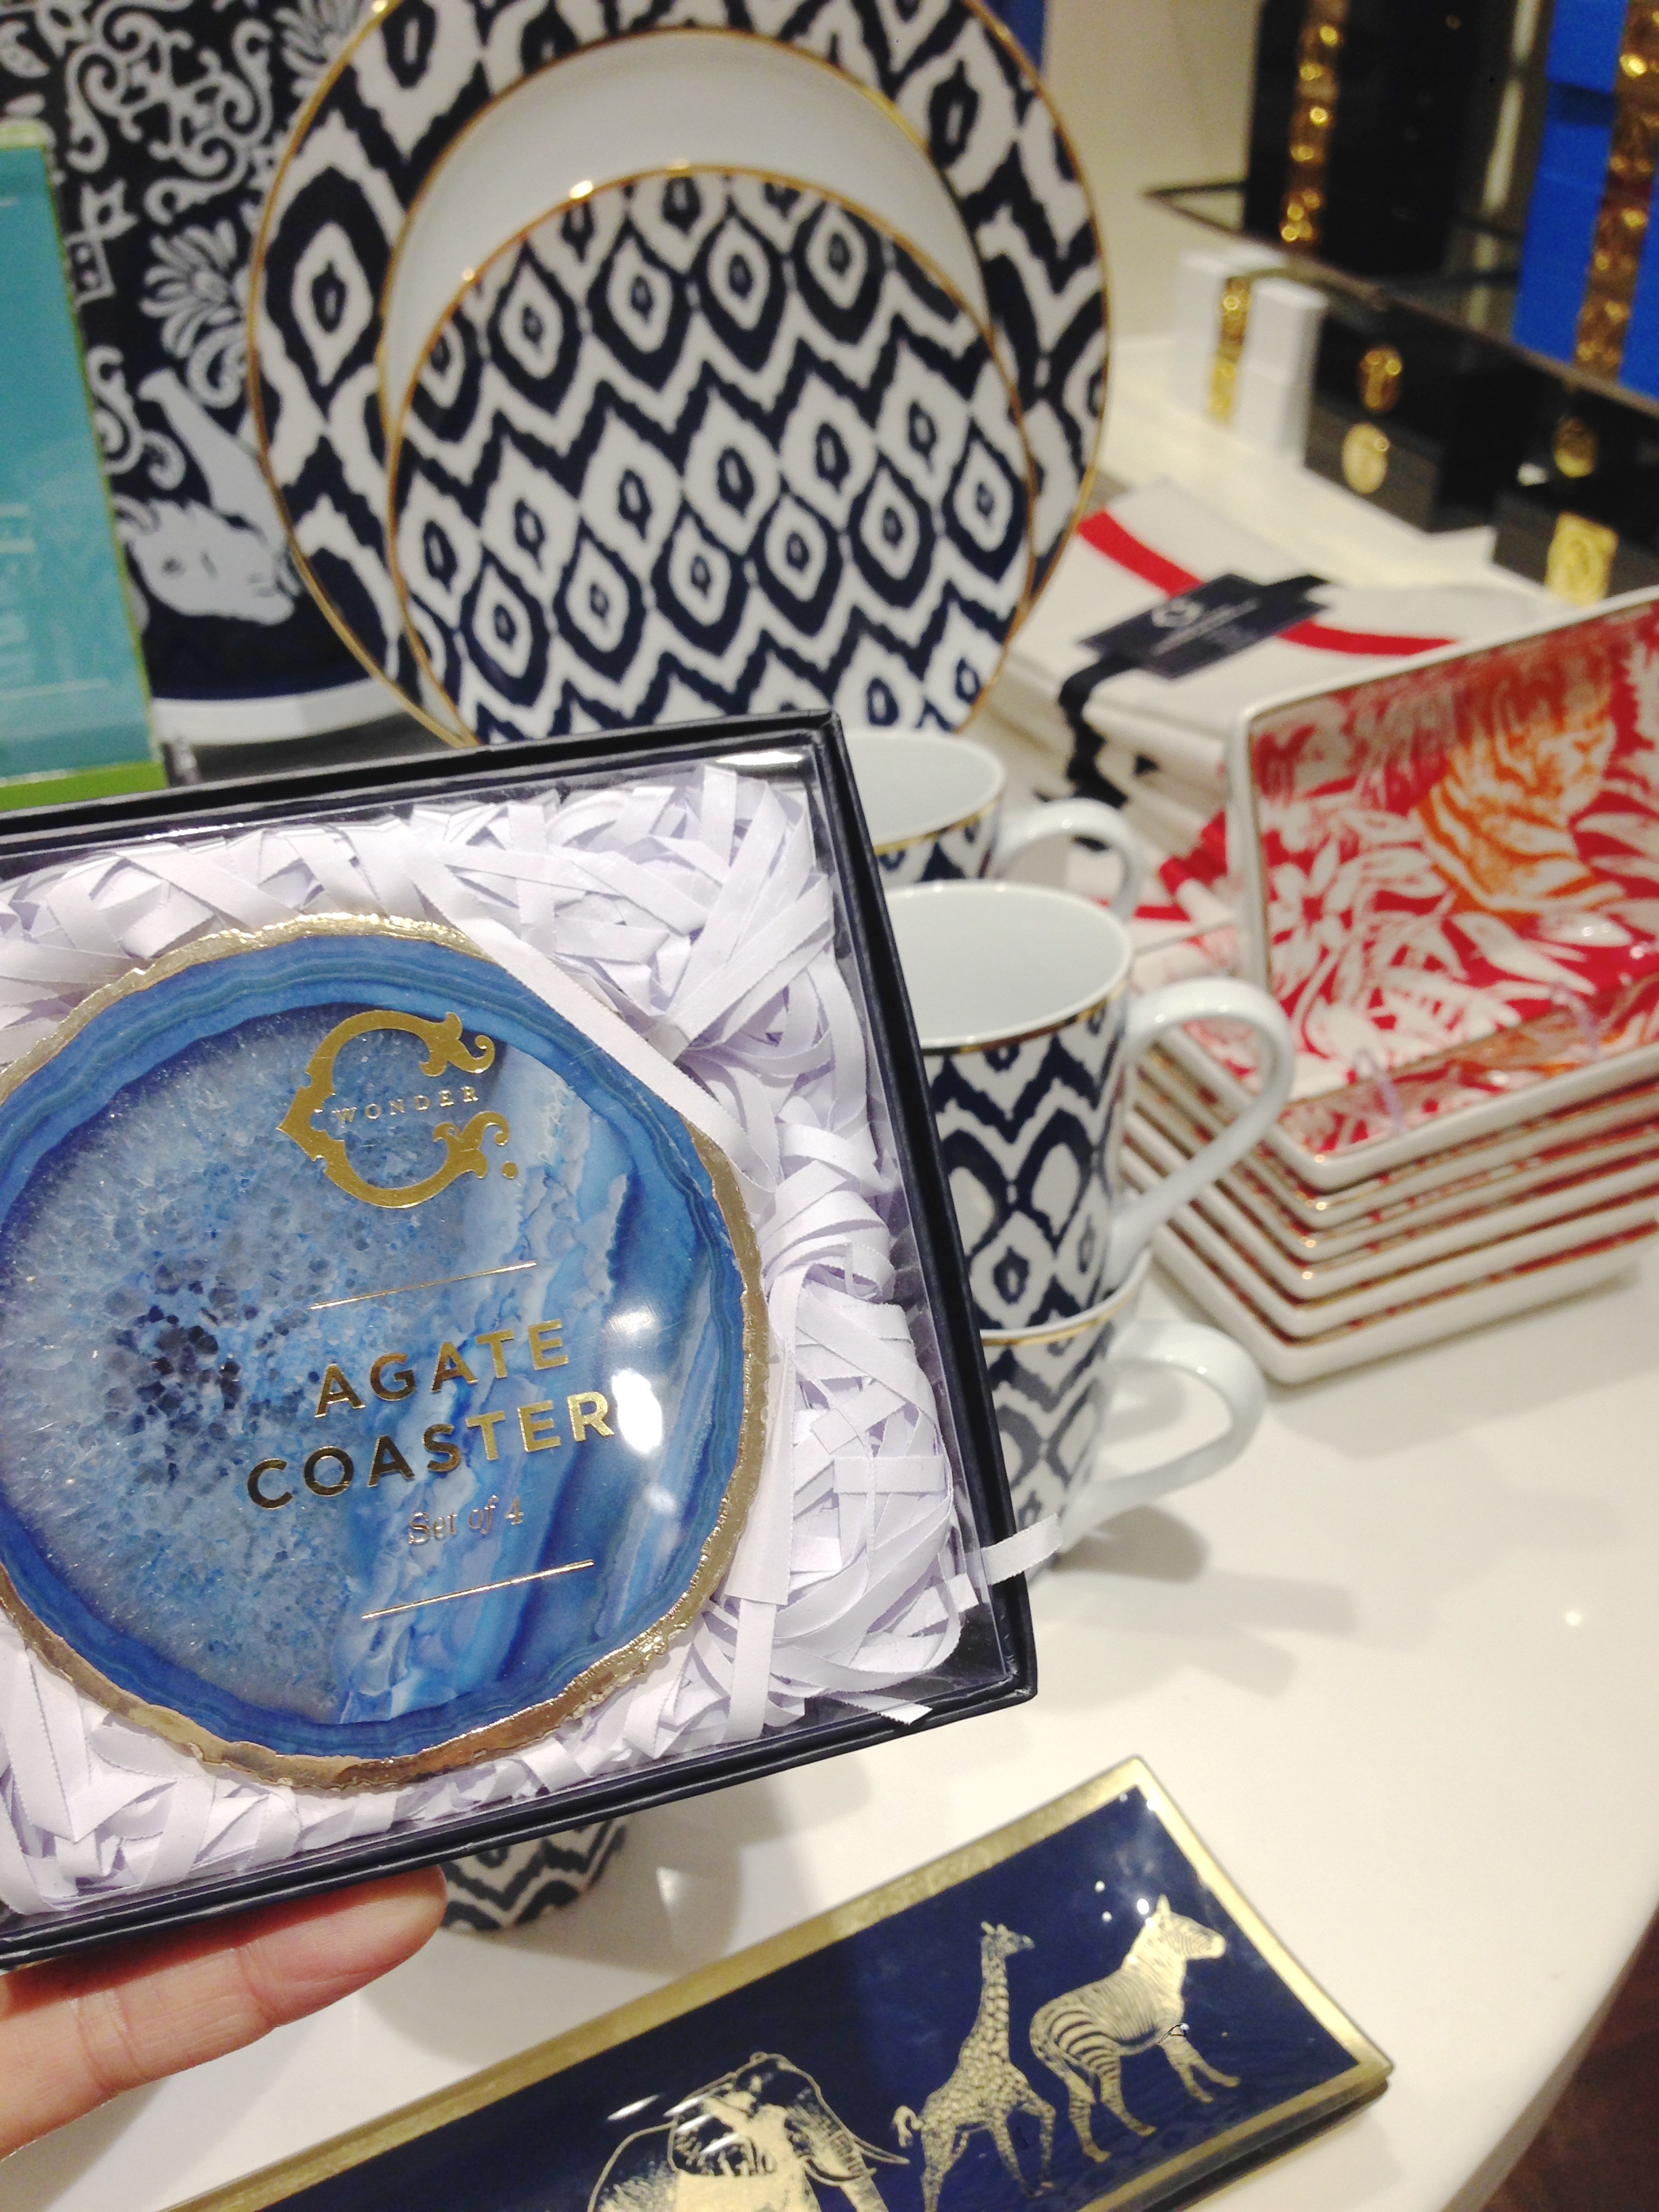 These coasters, like many items in the store, come in a variety of colors. What a great Hostess or Co-worker gift!